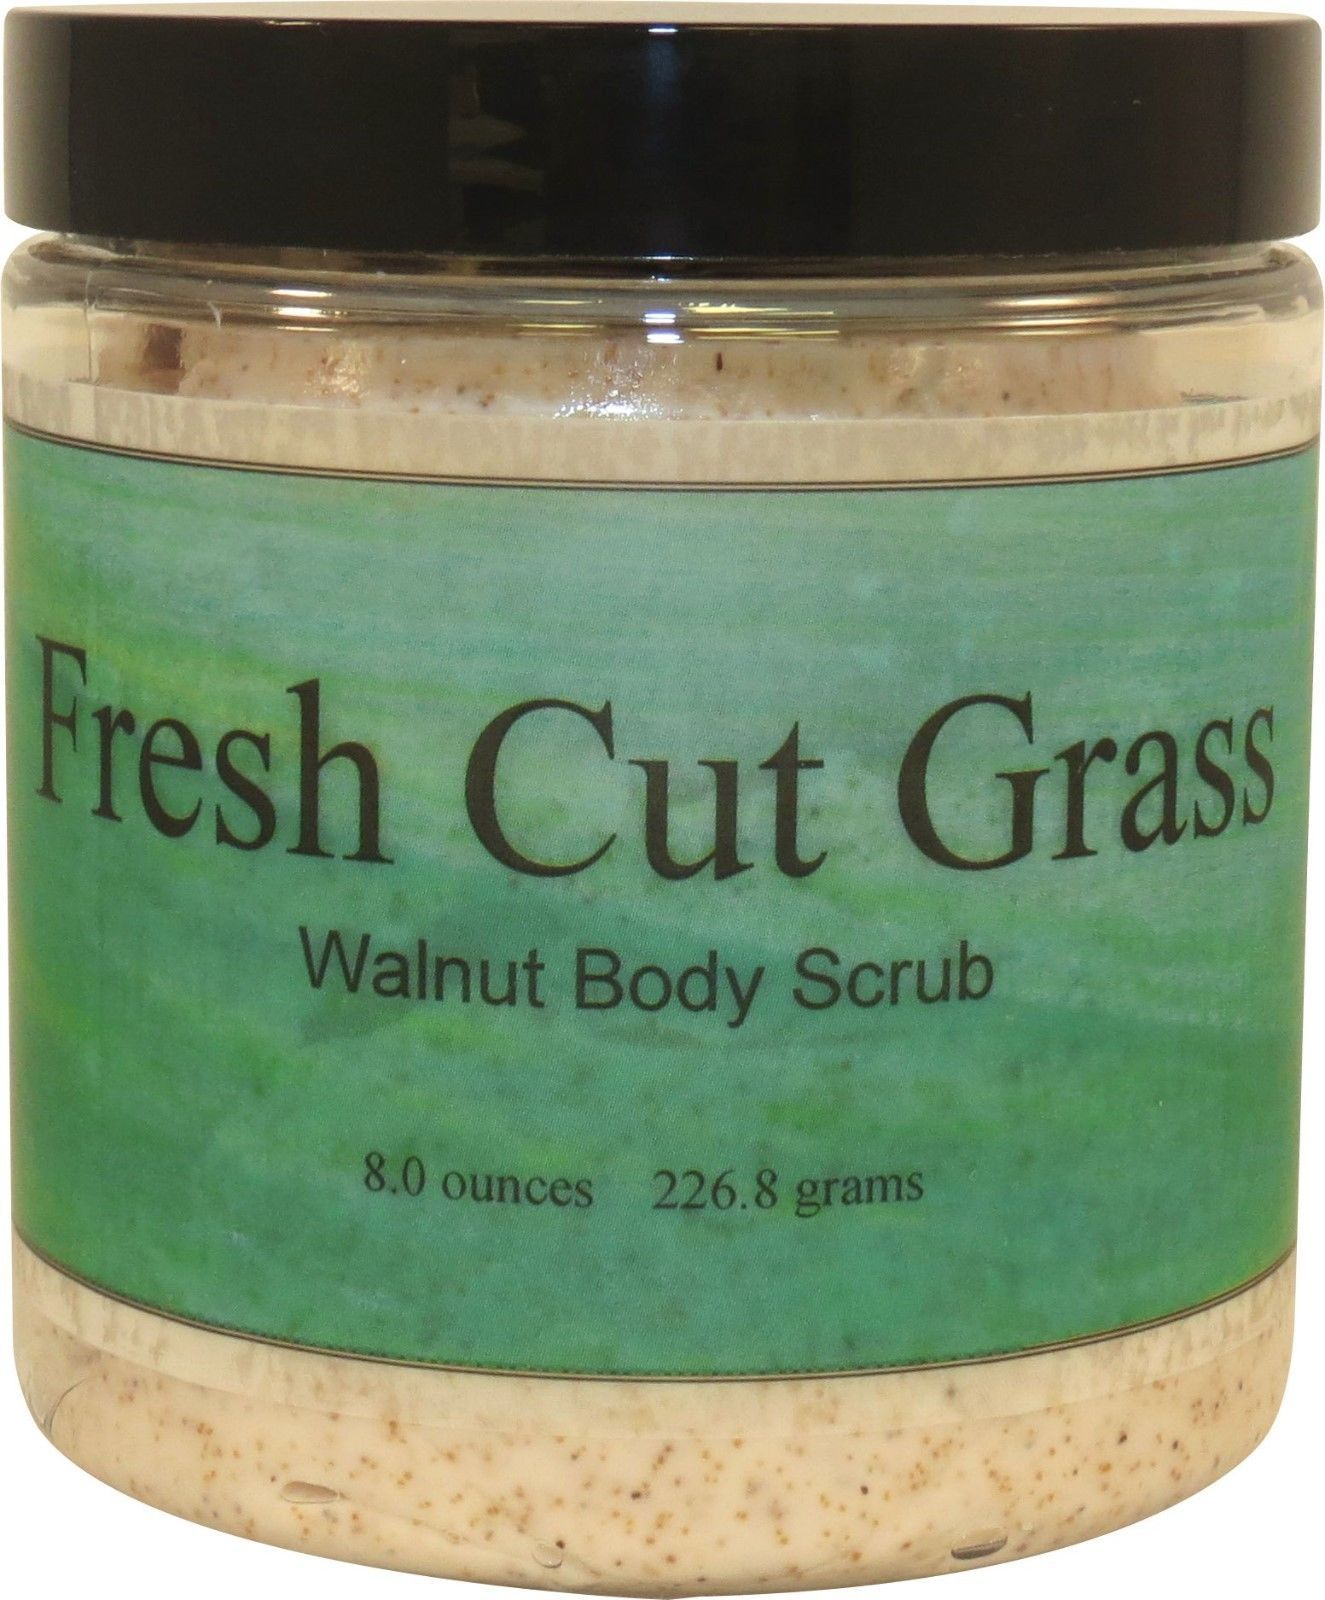 Fresh Cut Grass Walnut Body Scrub